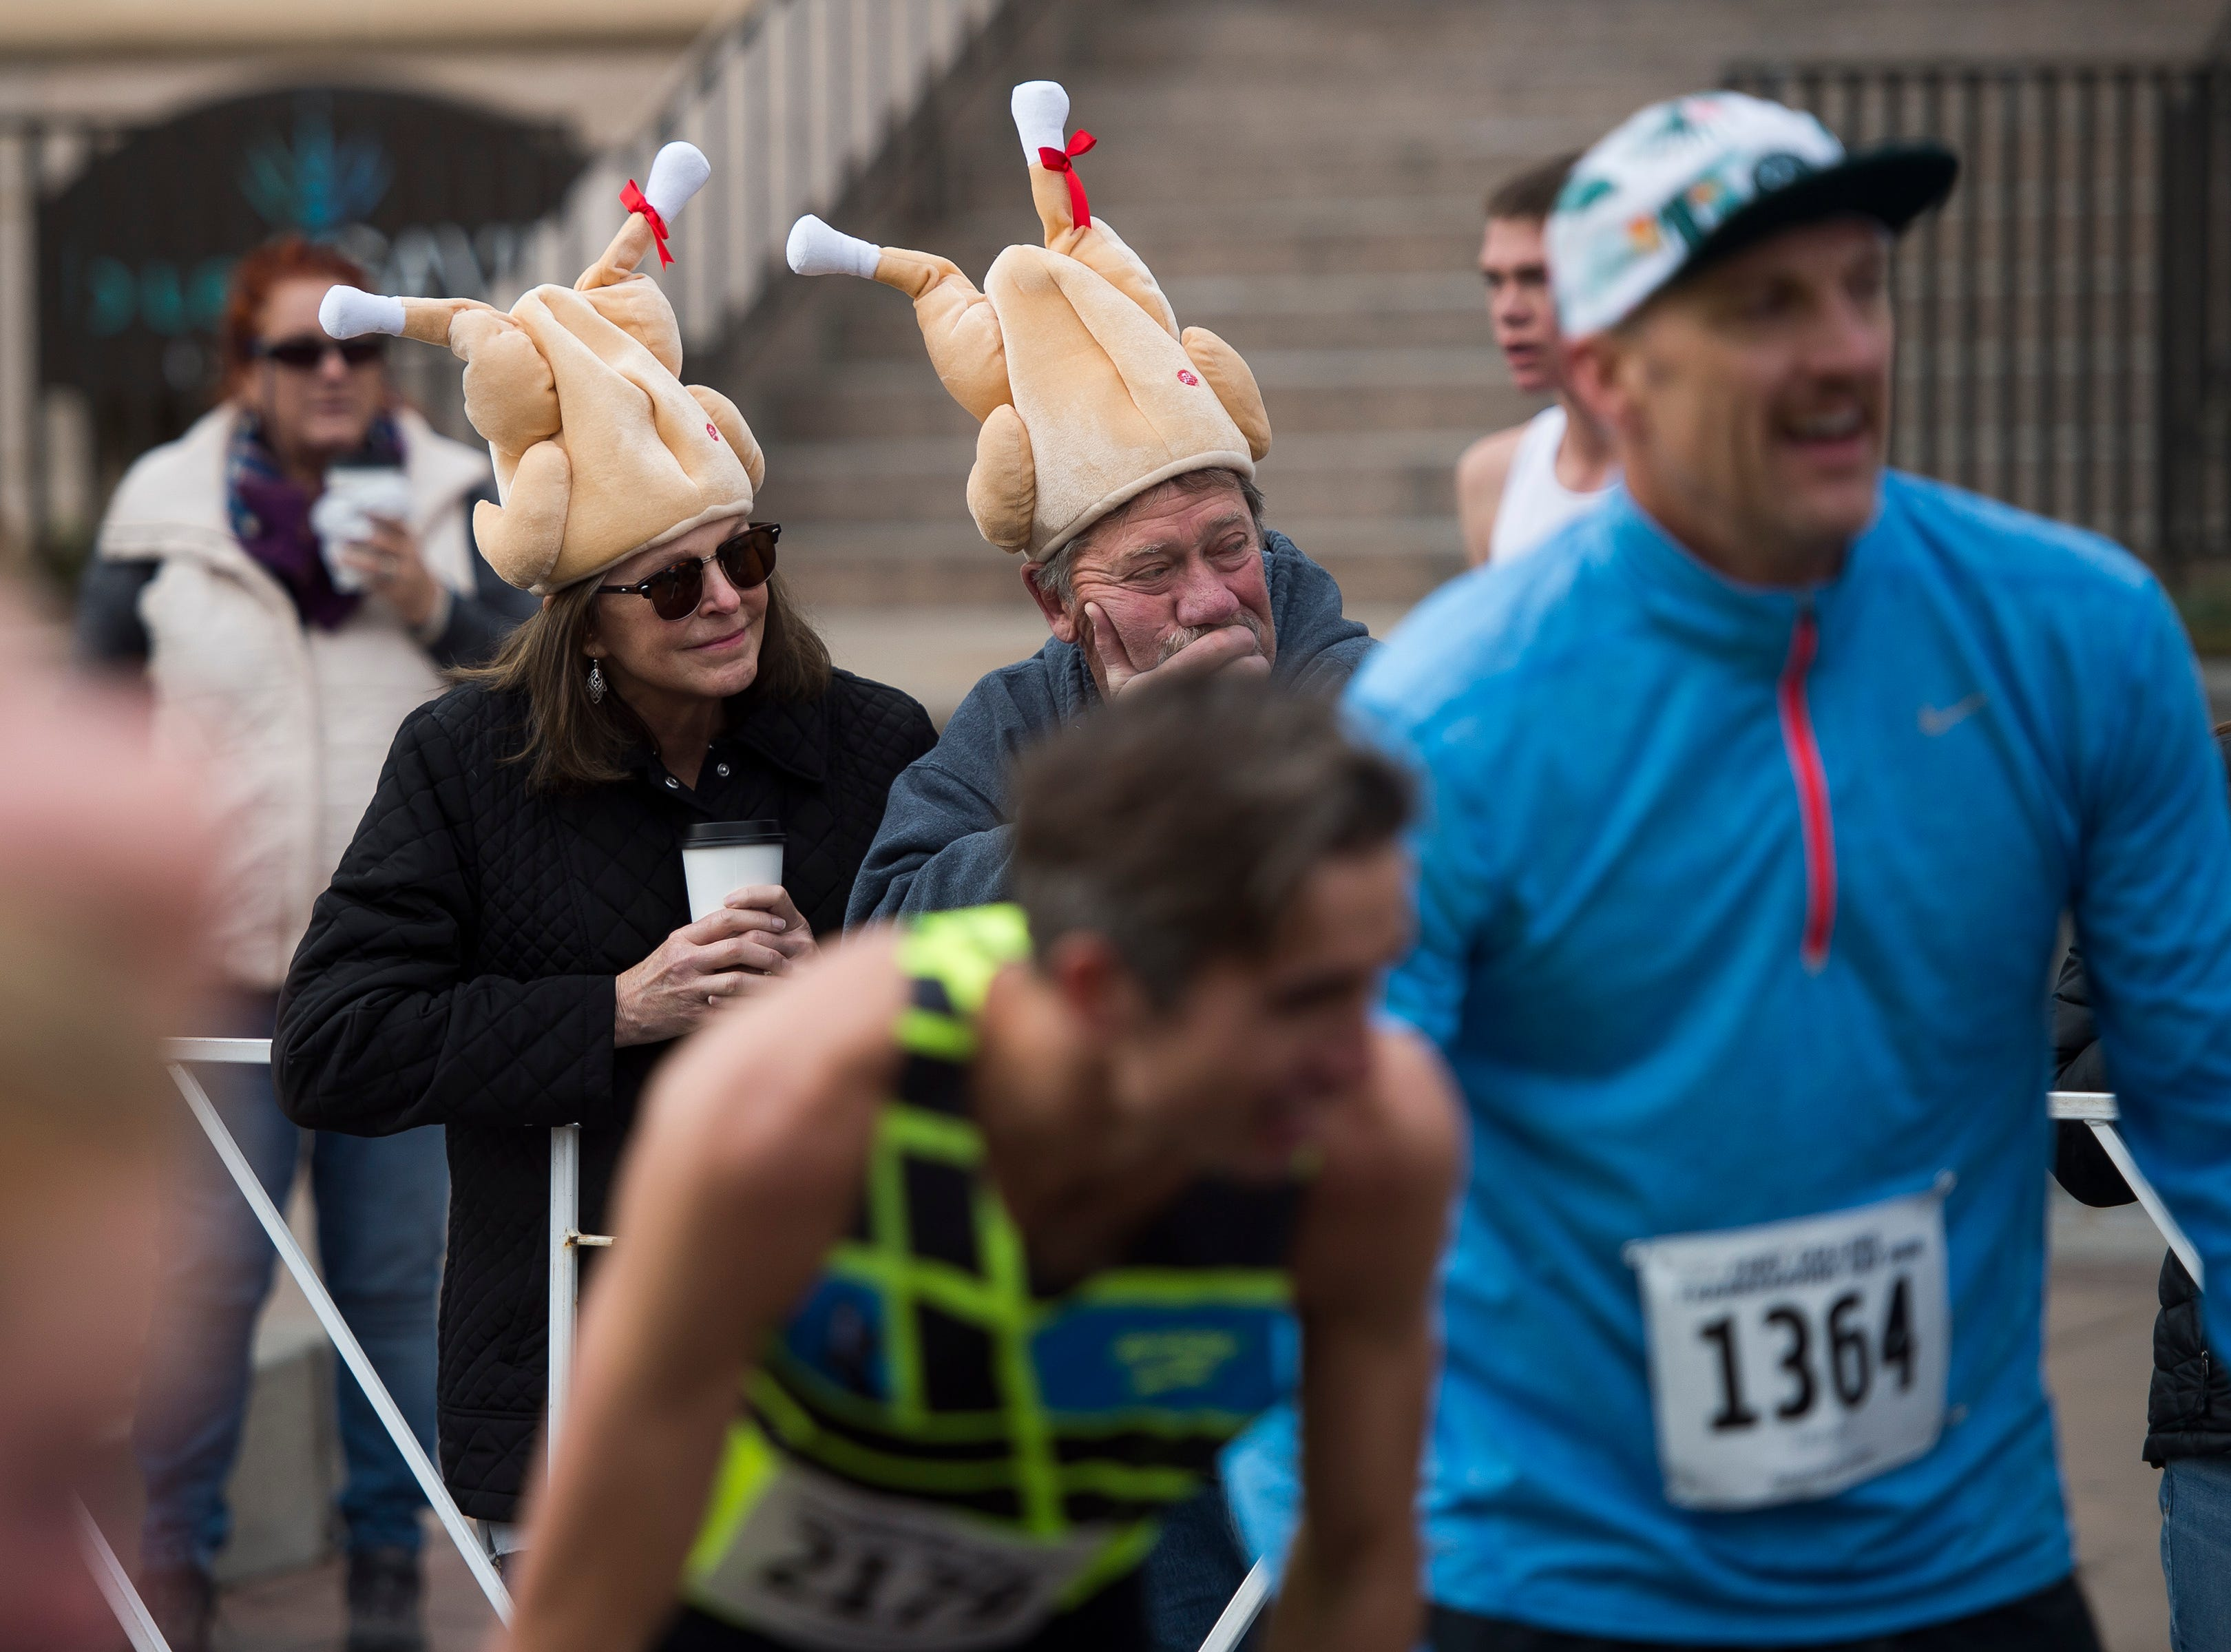 Fans wearing festive hats look on at the finish line during the Fort Collins Thanksgiving Day Run on Thursday, Nov. 22, 2018, in Old Town Fort Collins, Colo.